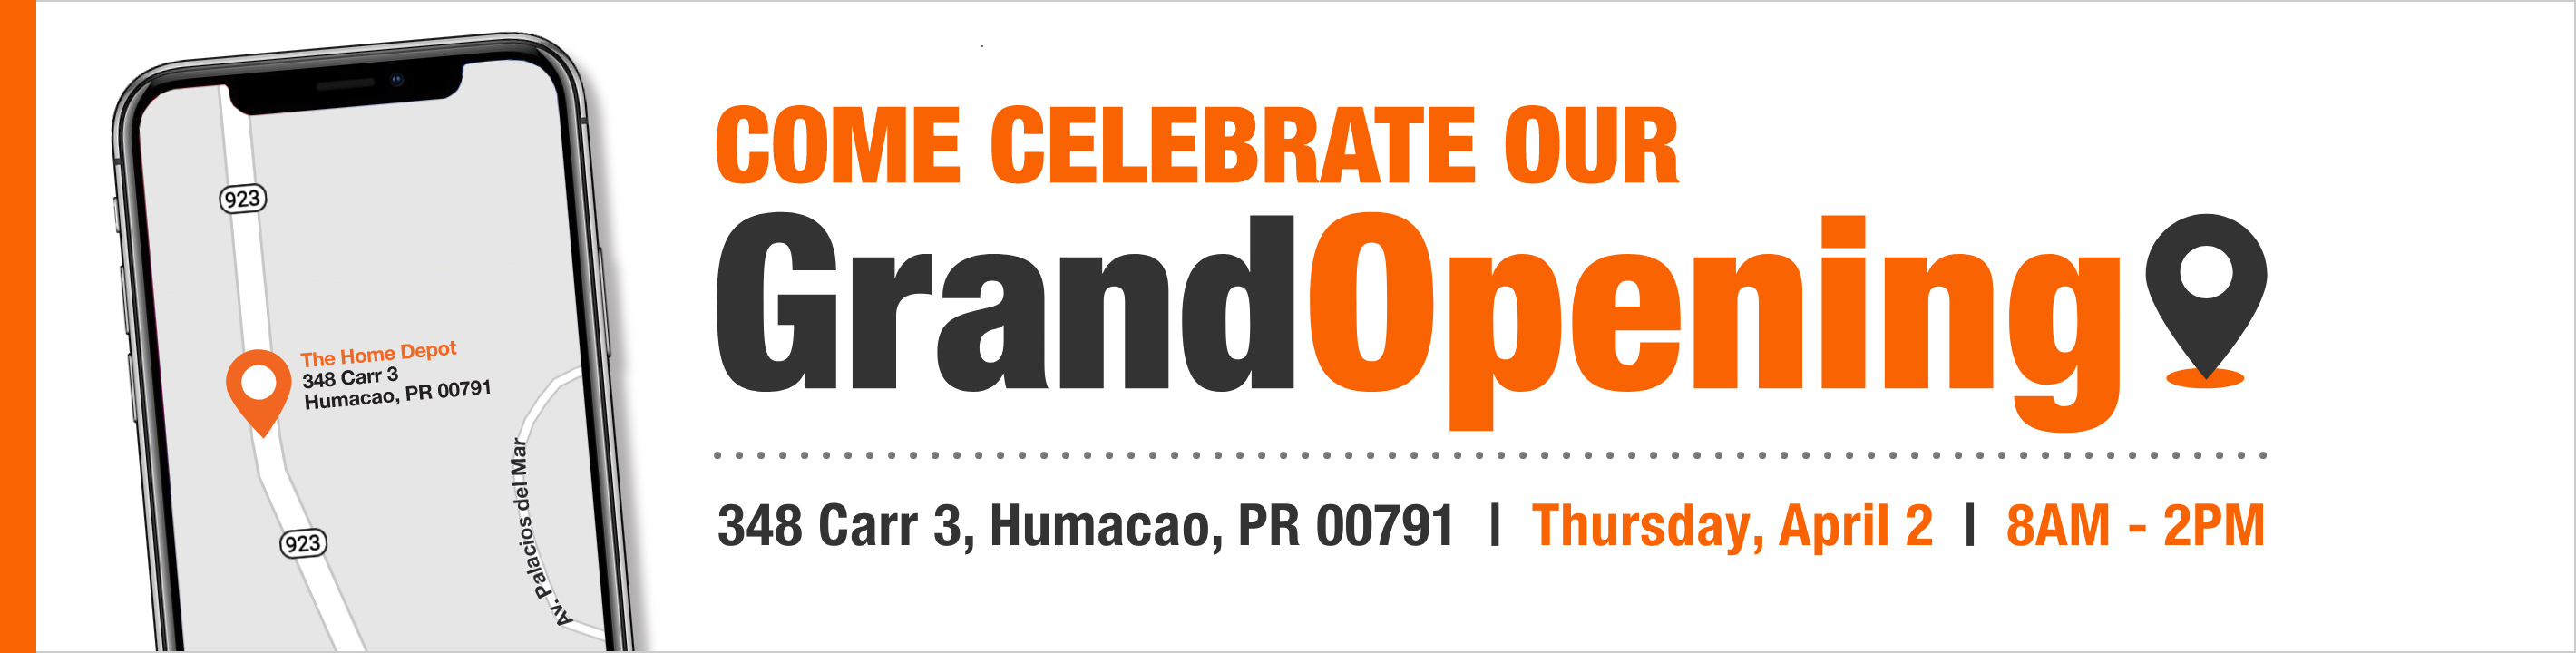 grand opening - 348 Carr 3, Humacao, PR 00791